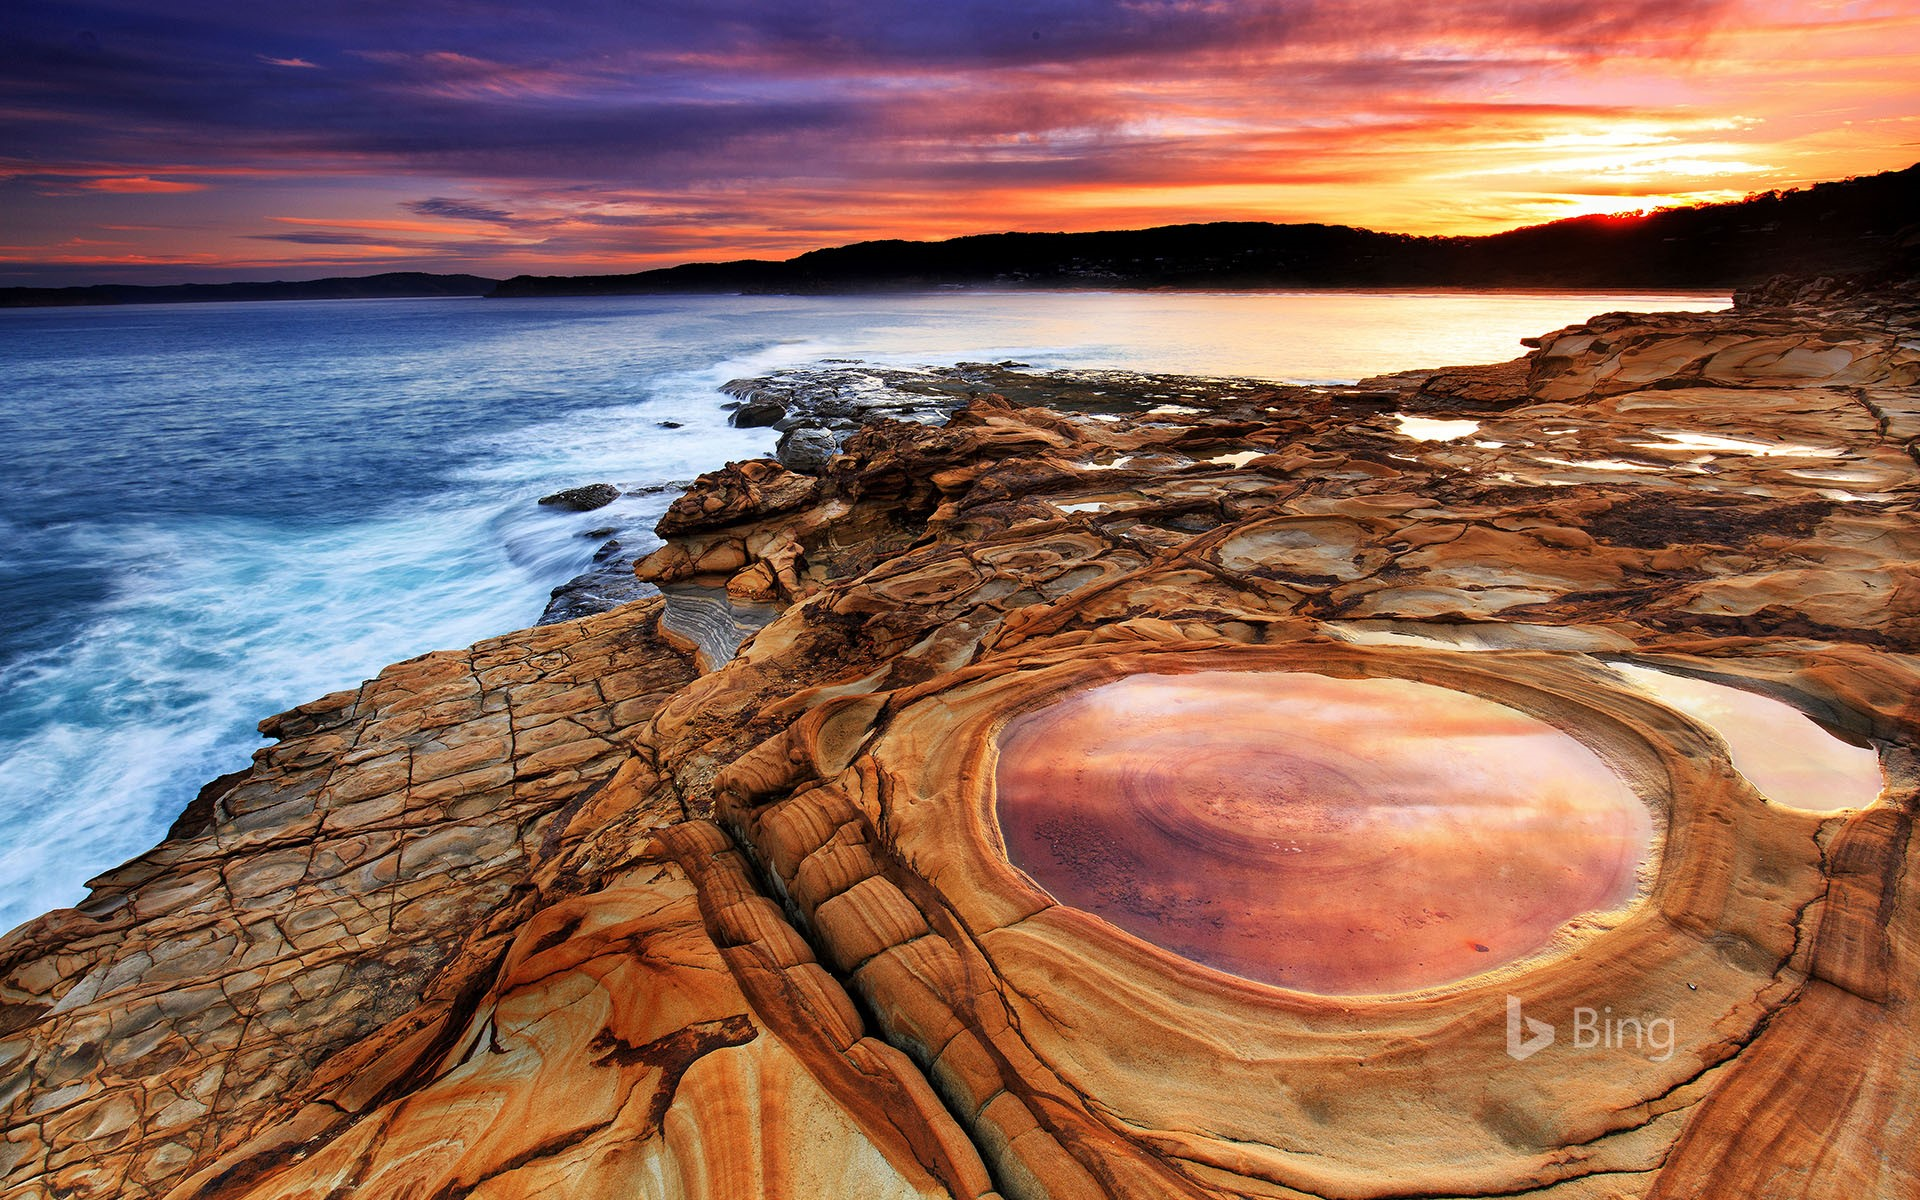 Putty Beach in New South Wales, Australia